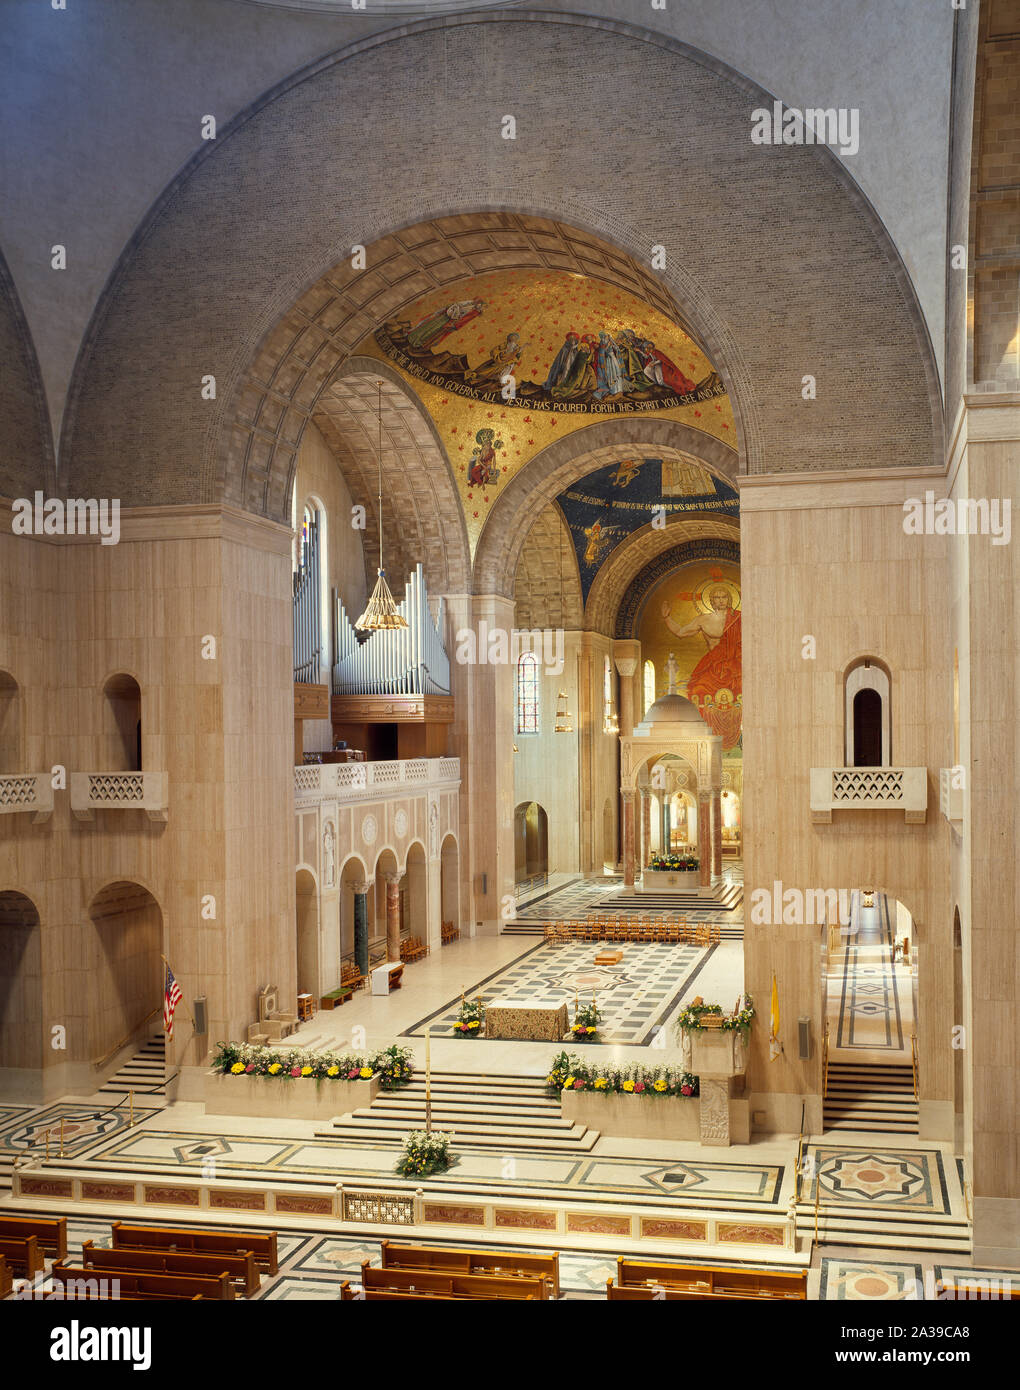 Sanctuary of the National Shrine of the Immaculate Conception on the campus of the Catholic University of America, Washington, D.C Stock Photo